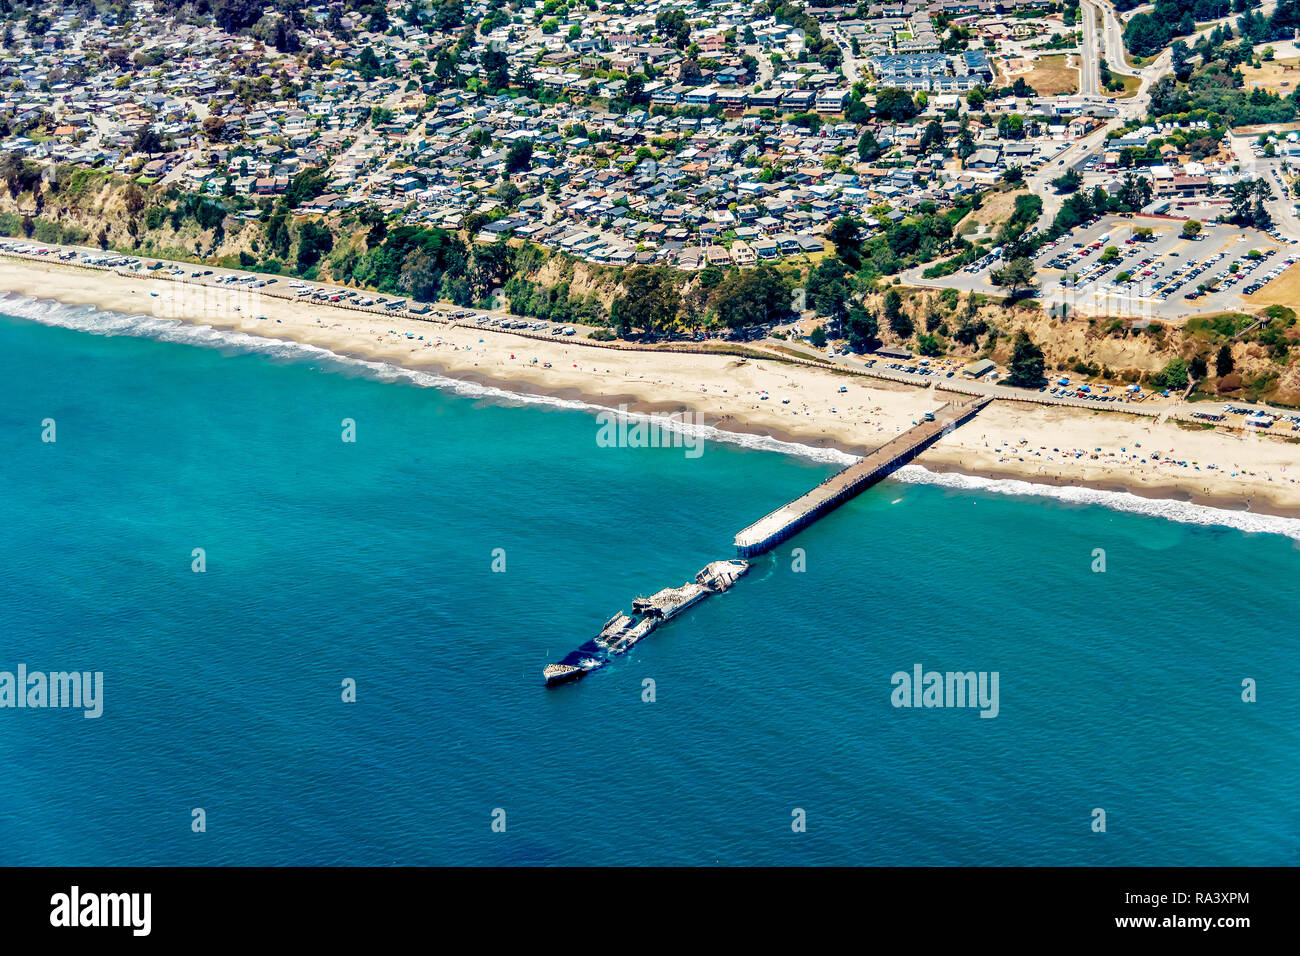 Aerial view of a sunken ship at the end of the pier in Aptos, California. - Stock Image